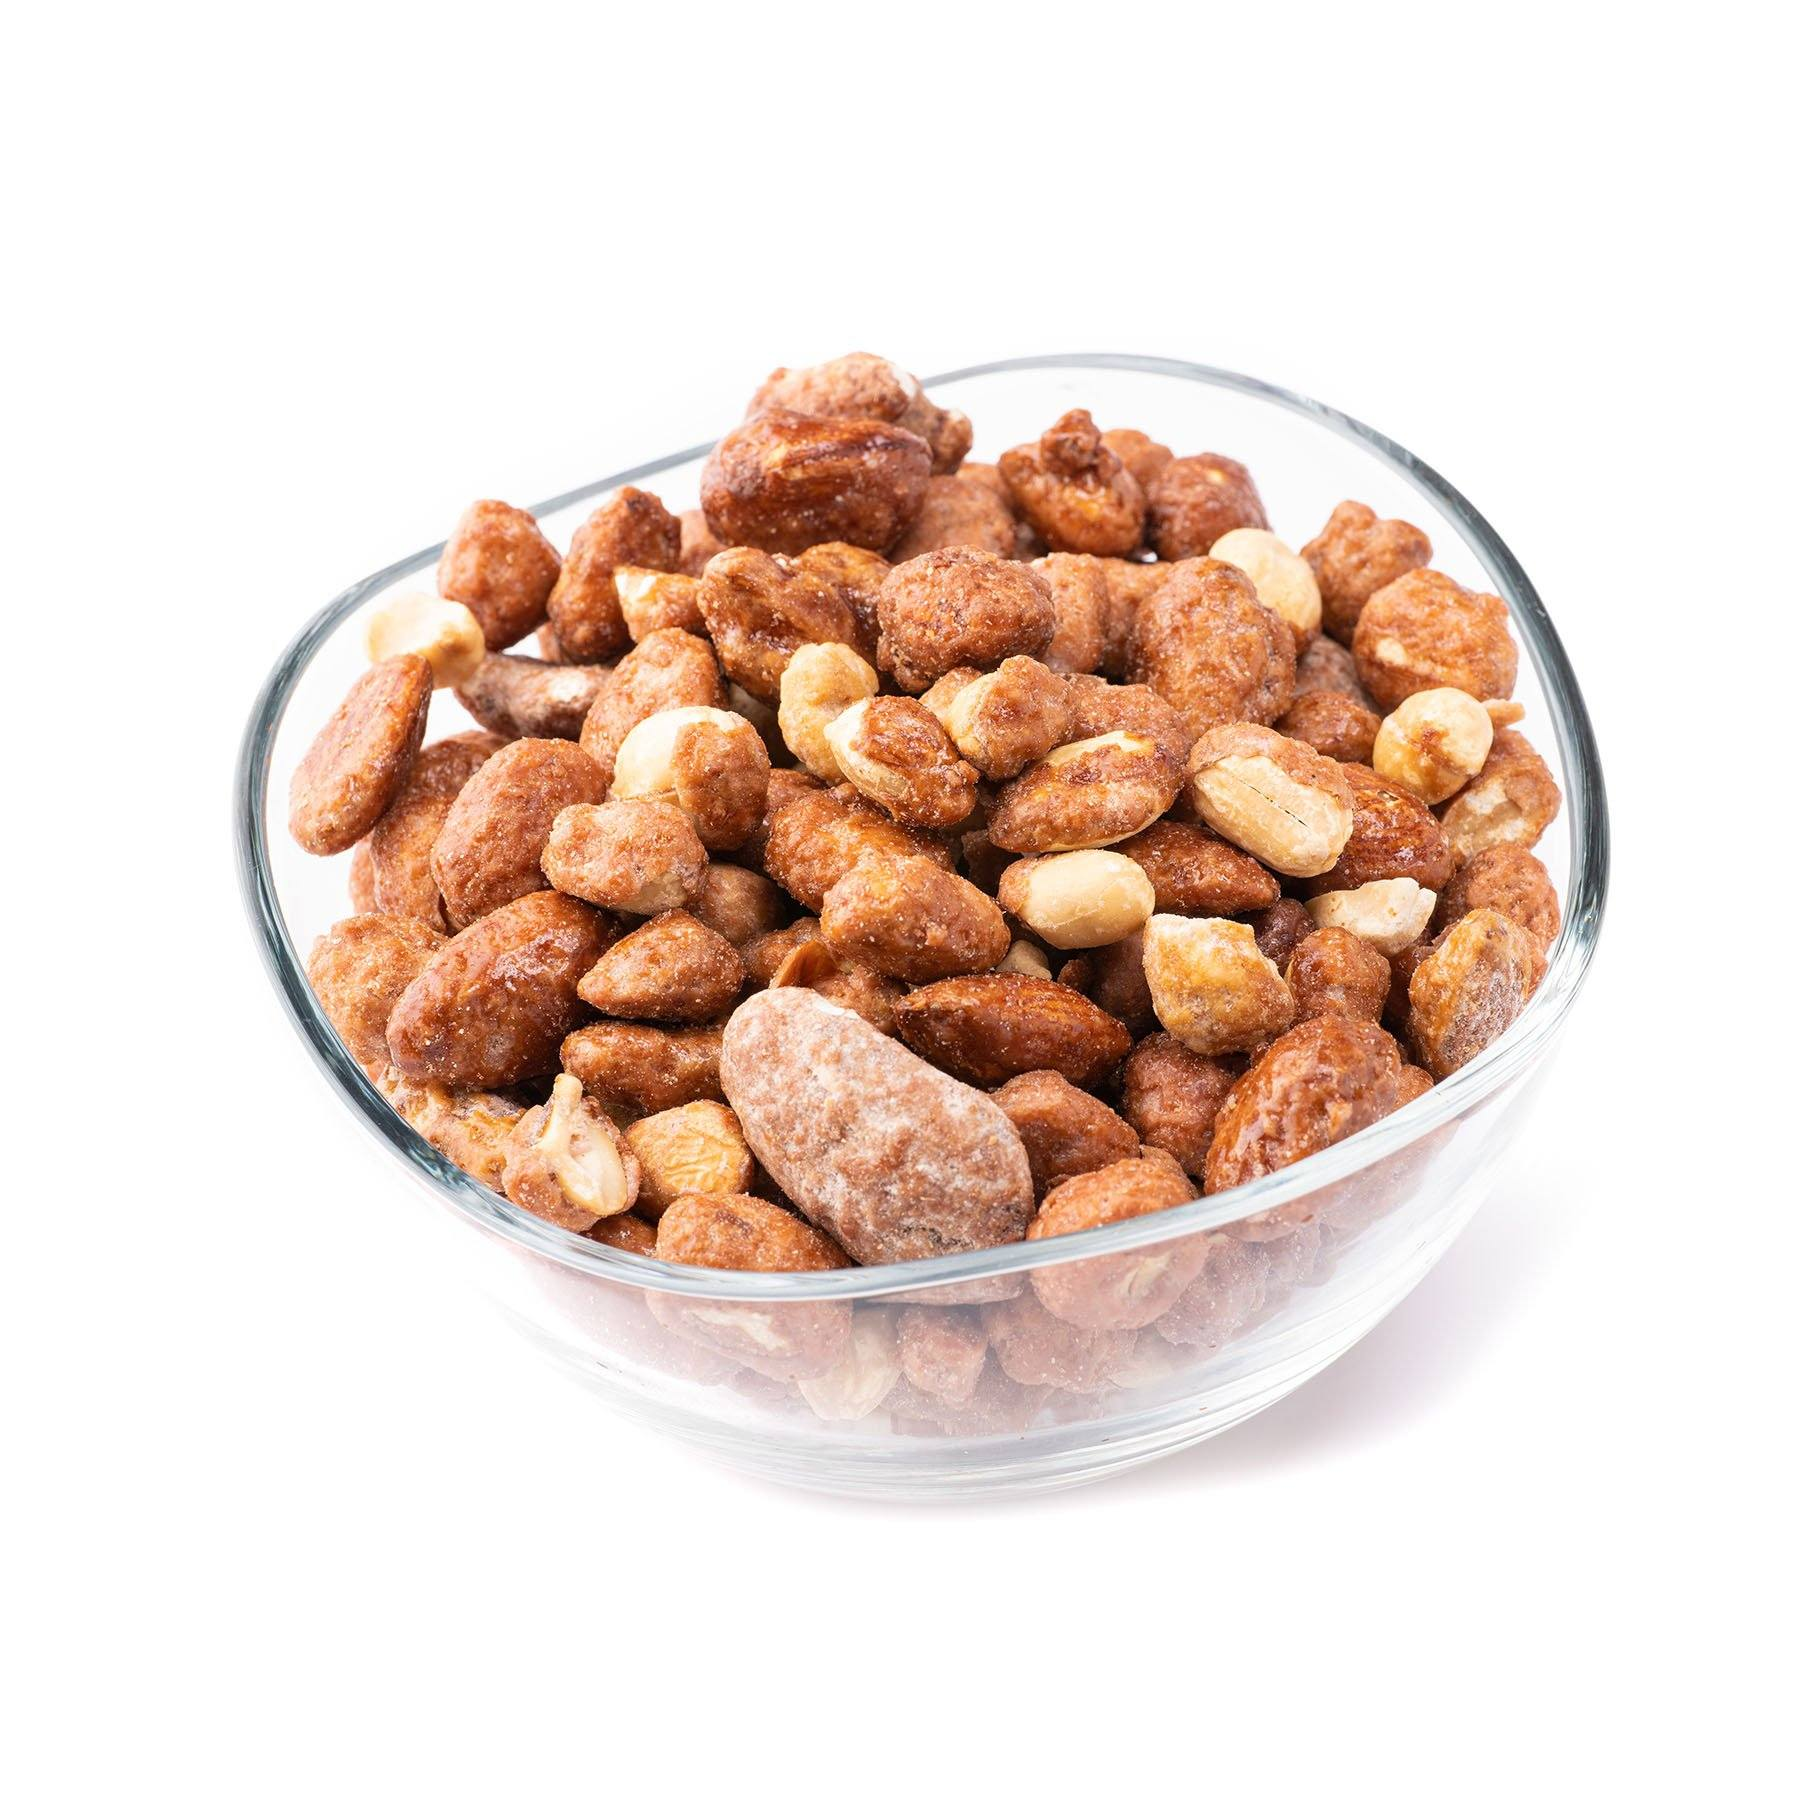 Butter Toffee Mixed Nuts (4621236142195)